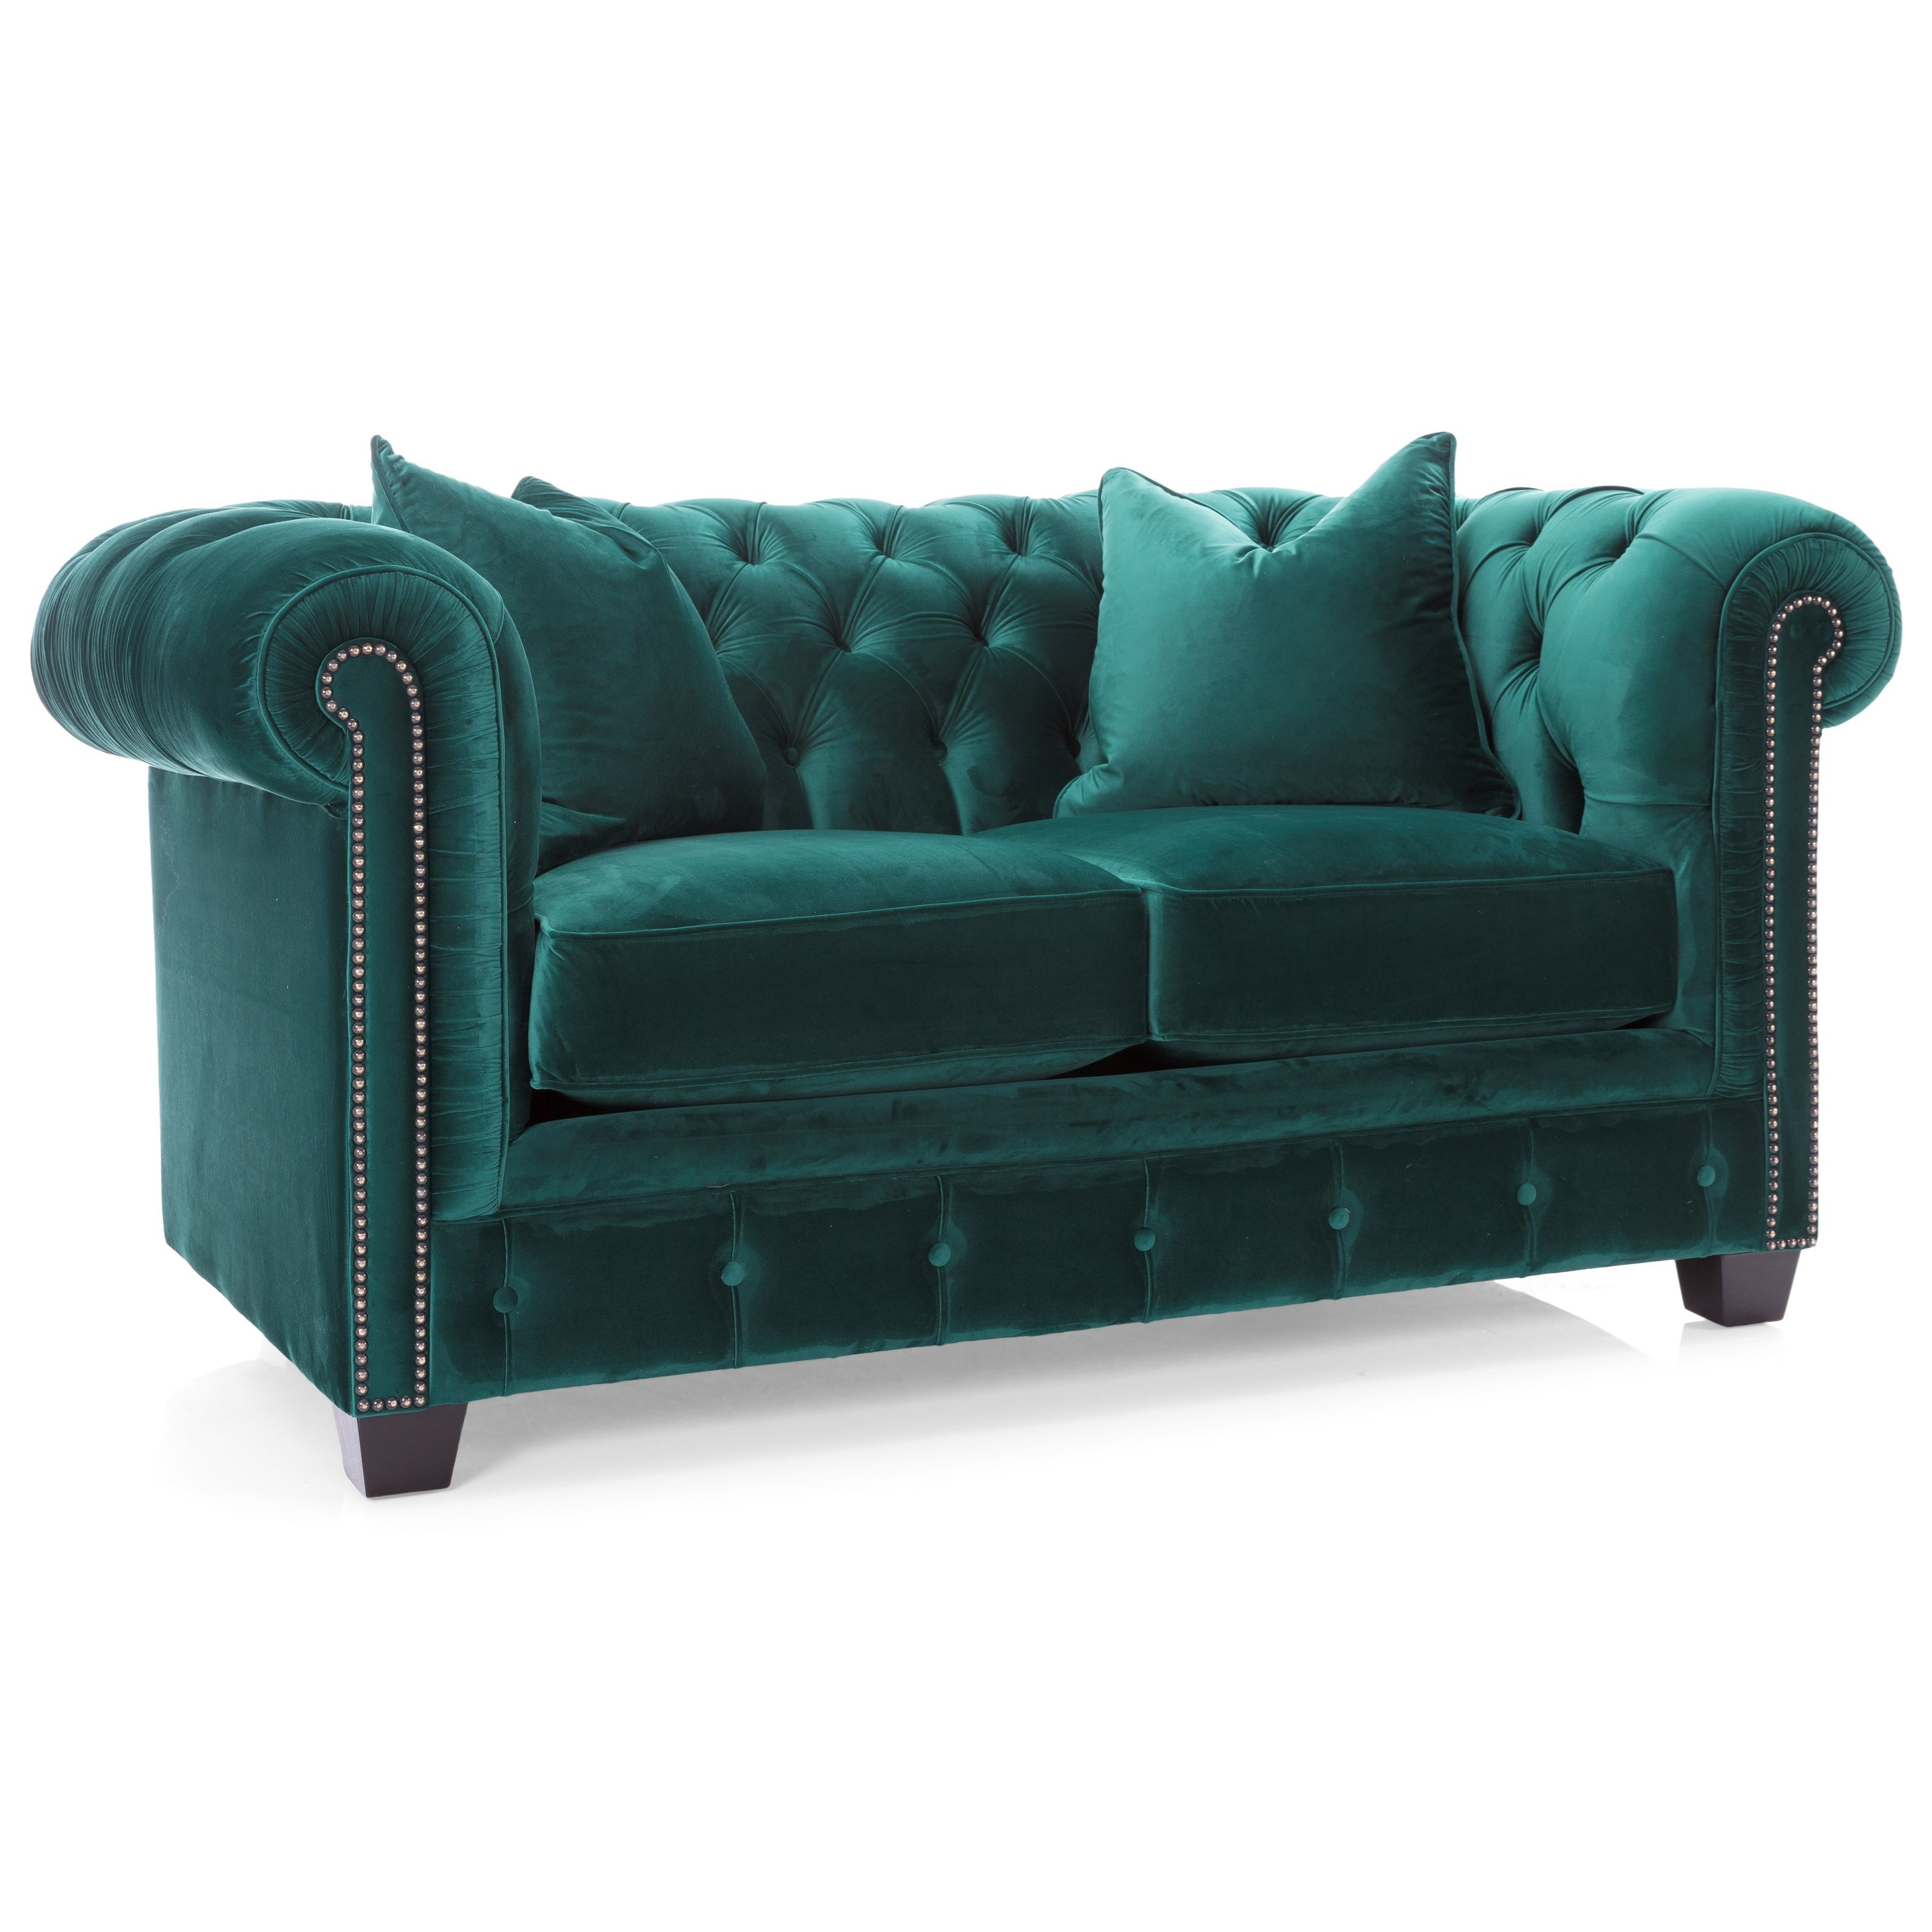 2230 Series Loveseat by Decor-Rest at Rooms for Less